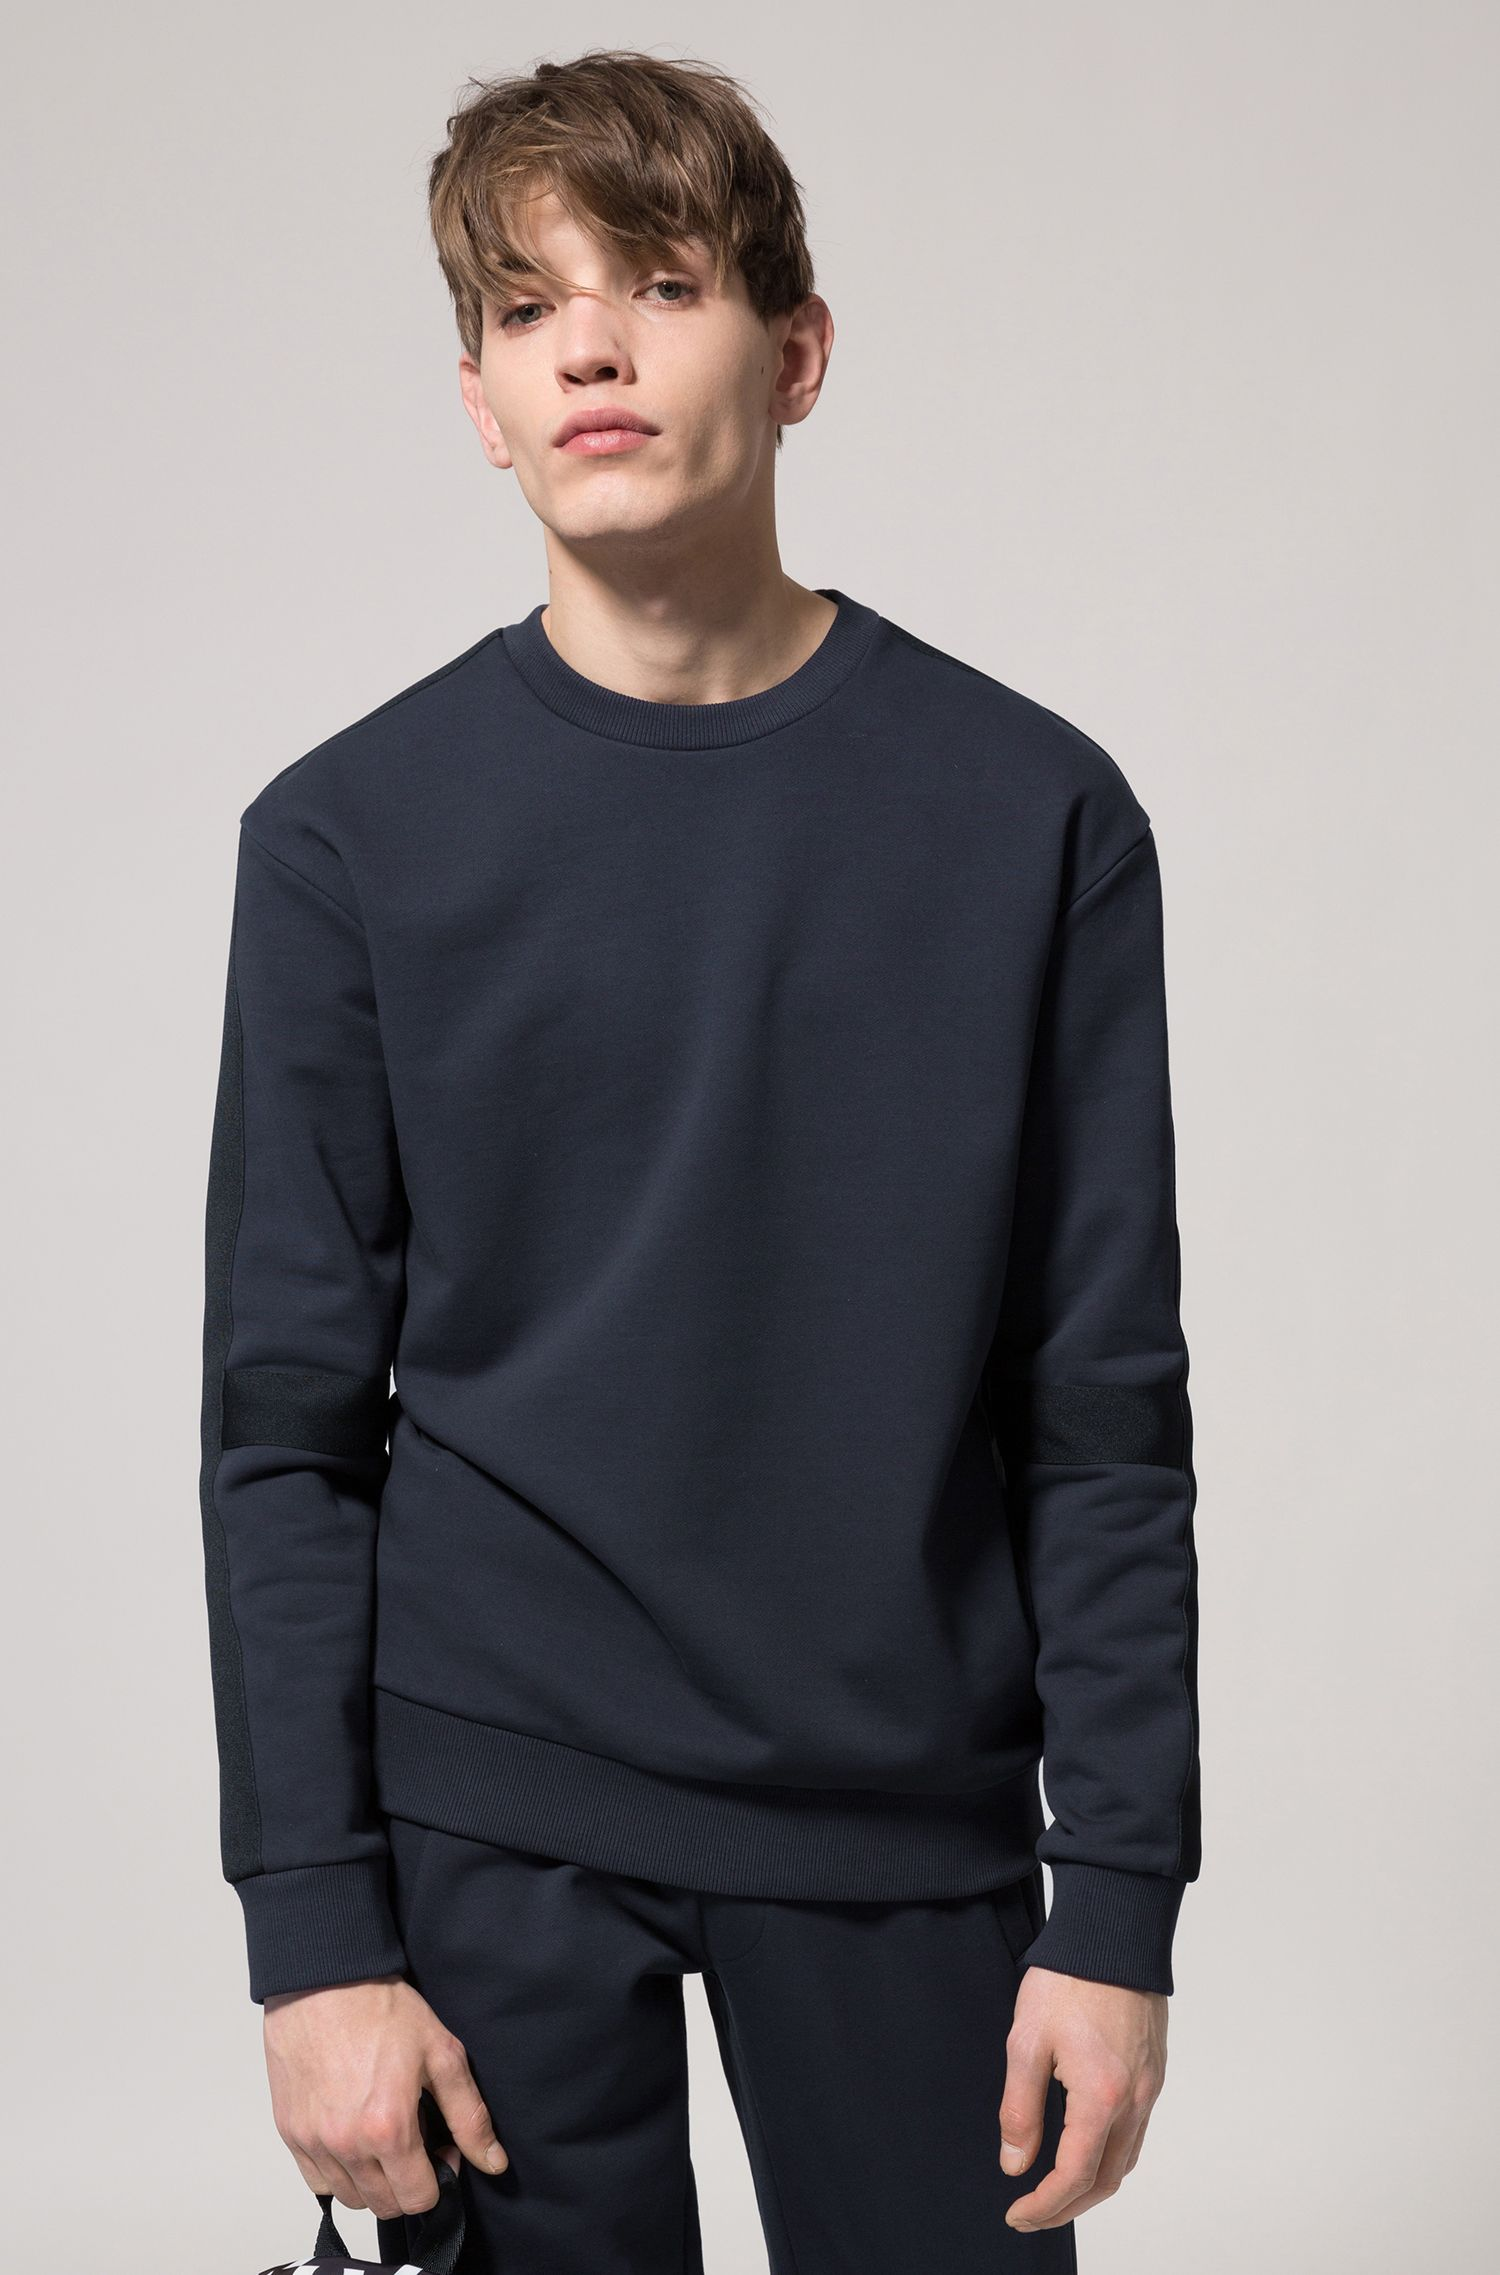 Hugo Boss - Sweat Oversized Fit à empiècements ton sur ton - 2